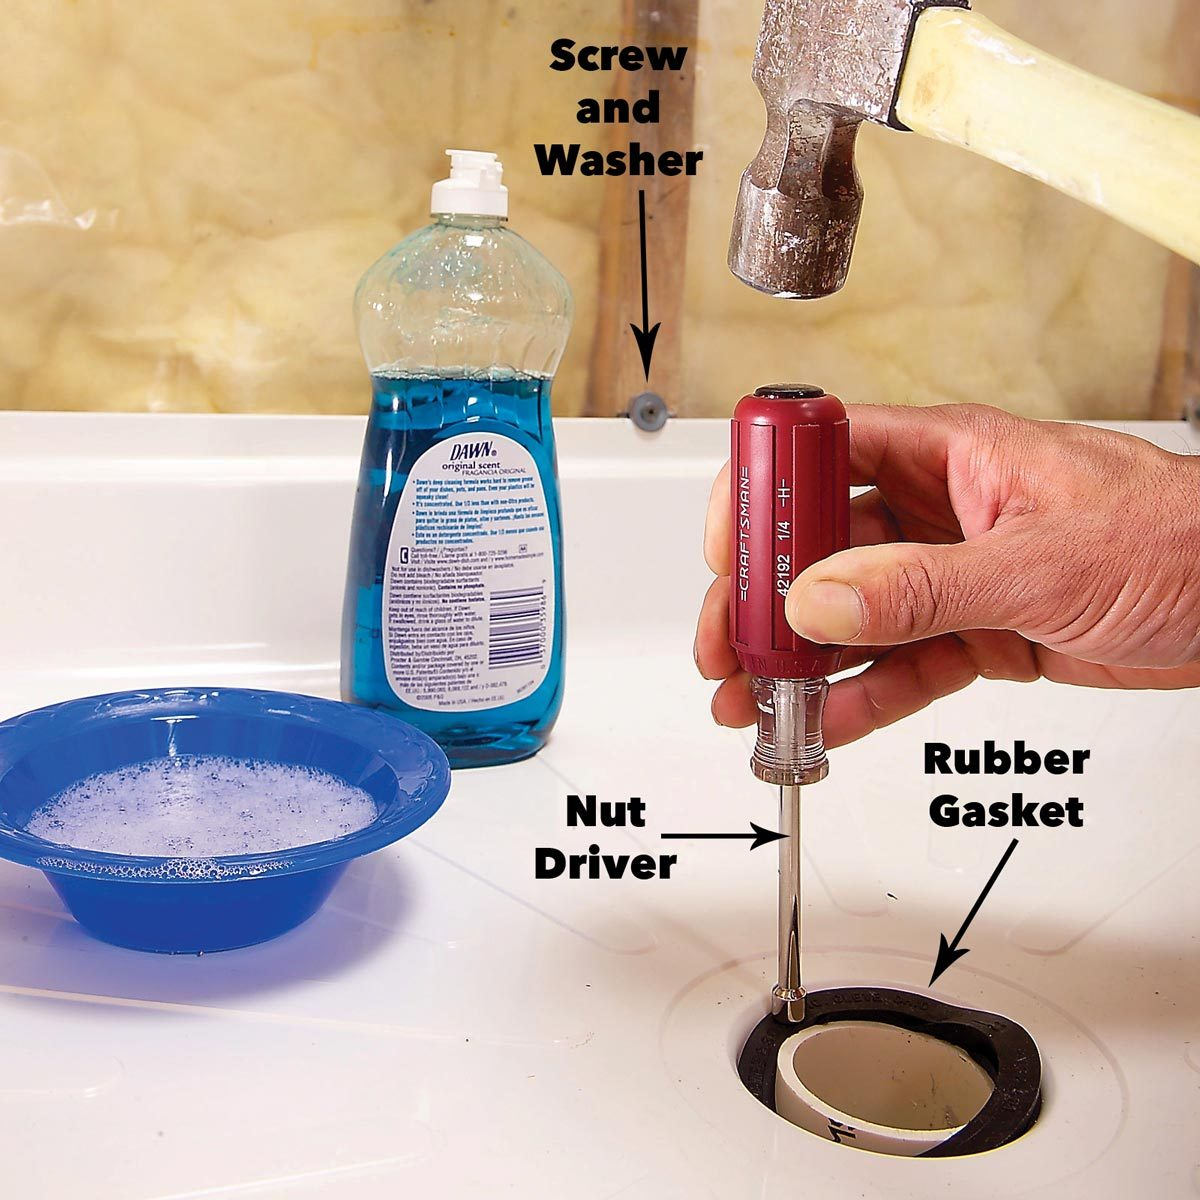 How to Hook Up a Bathroom Sink Drain